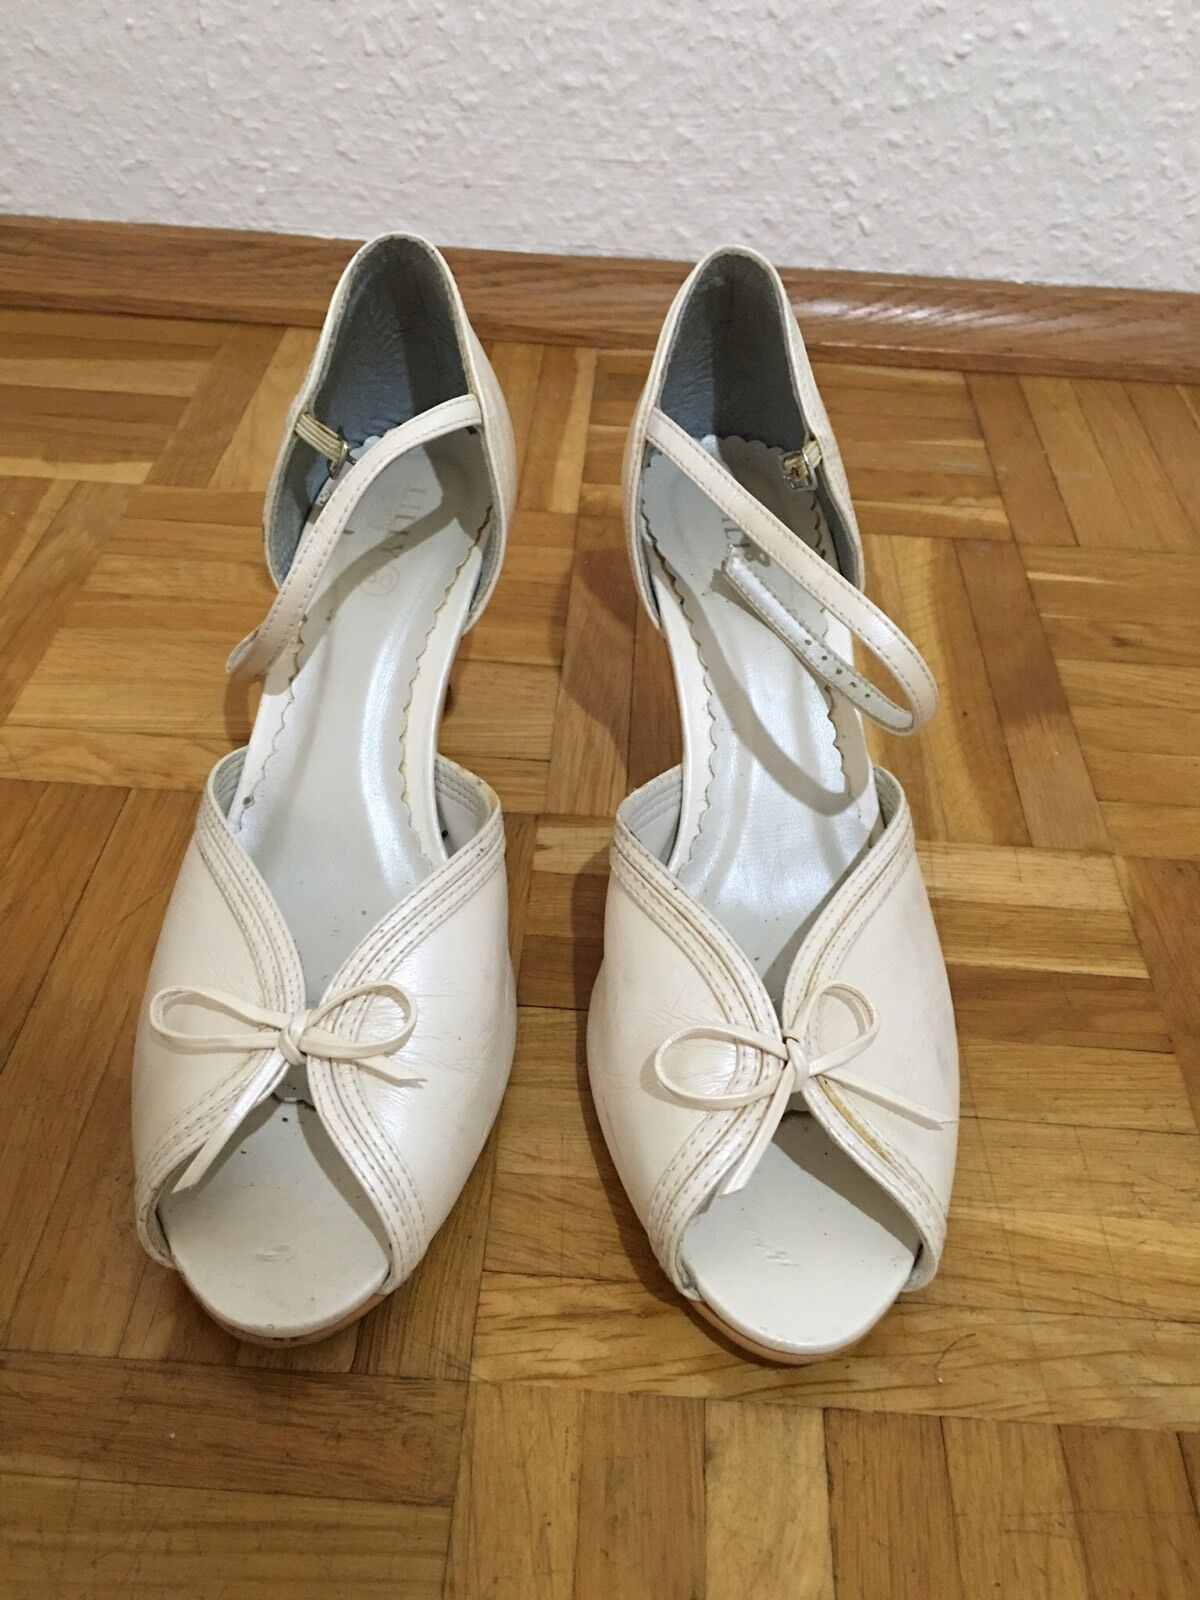 Lilly Shoes Wedding Bridal Bride School Size 40 95 Creme Pumps Peep Toes